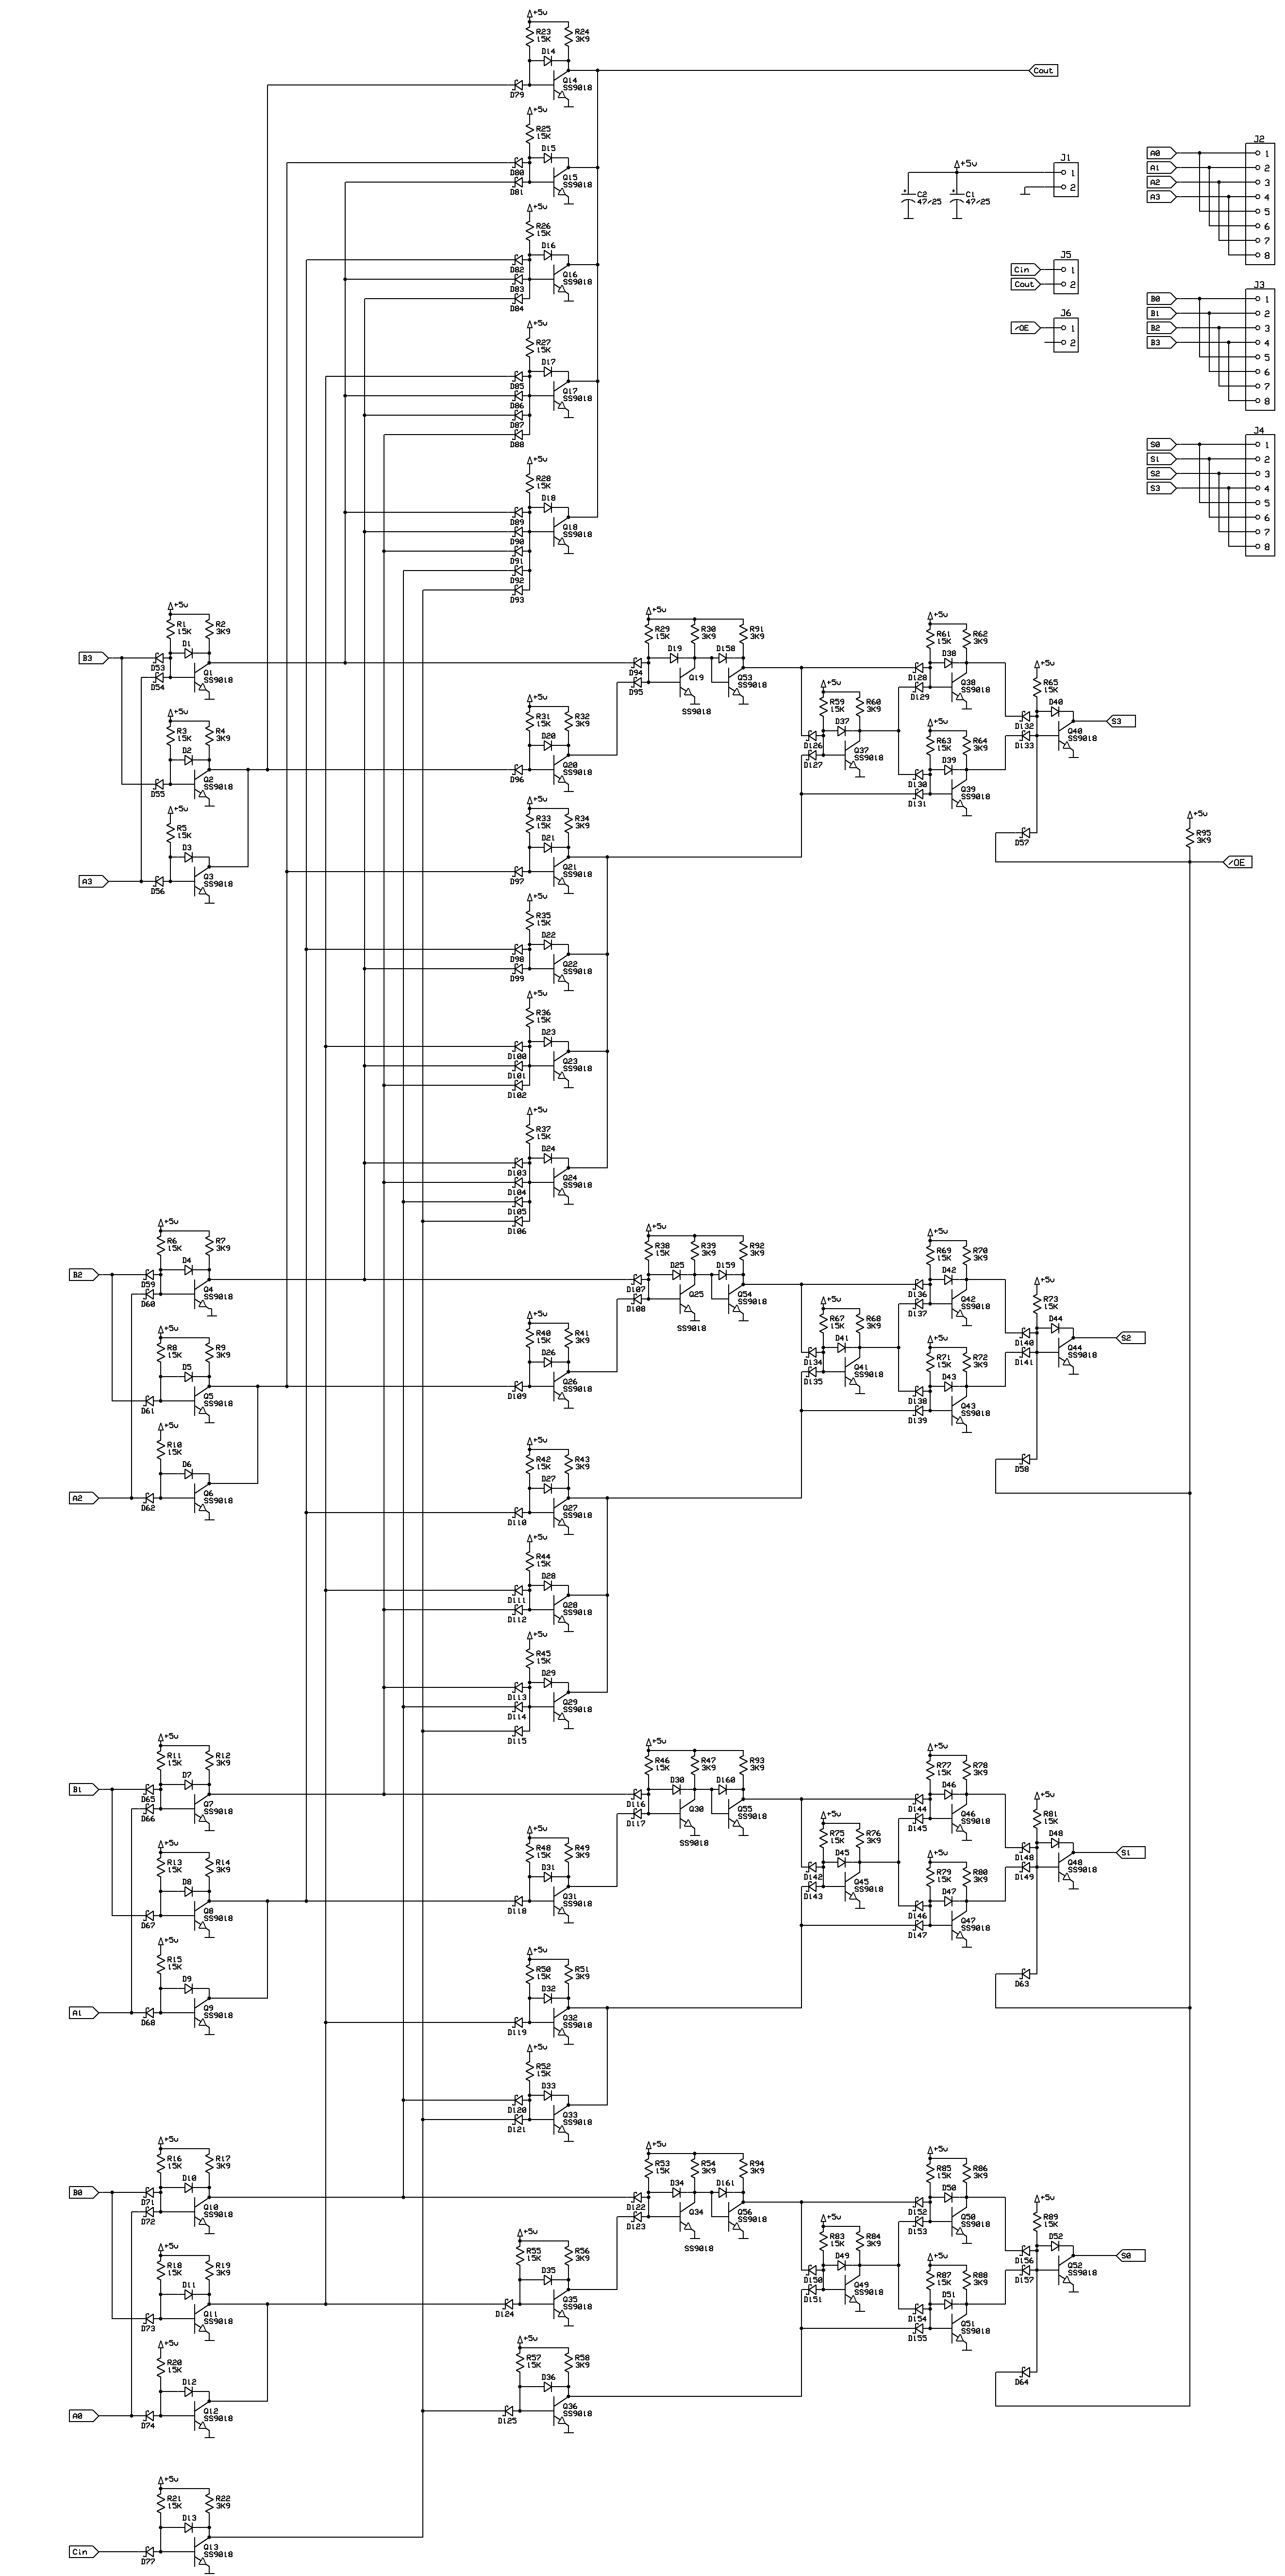 Homebuilt 8080 Alu 4 Bit Adder Logic Diagram Add Function Two Of These Is Used In The And Four More As Address Incrementer Decrementer